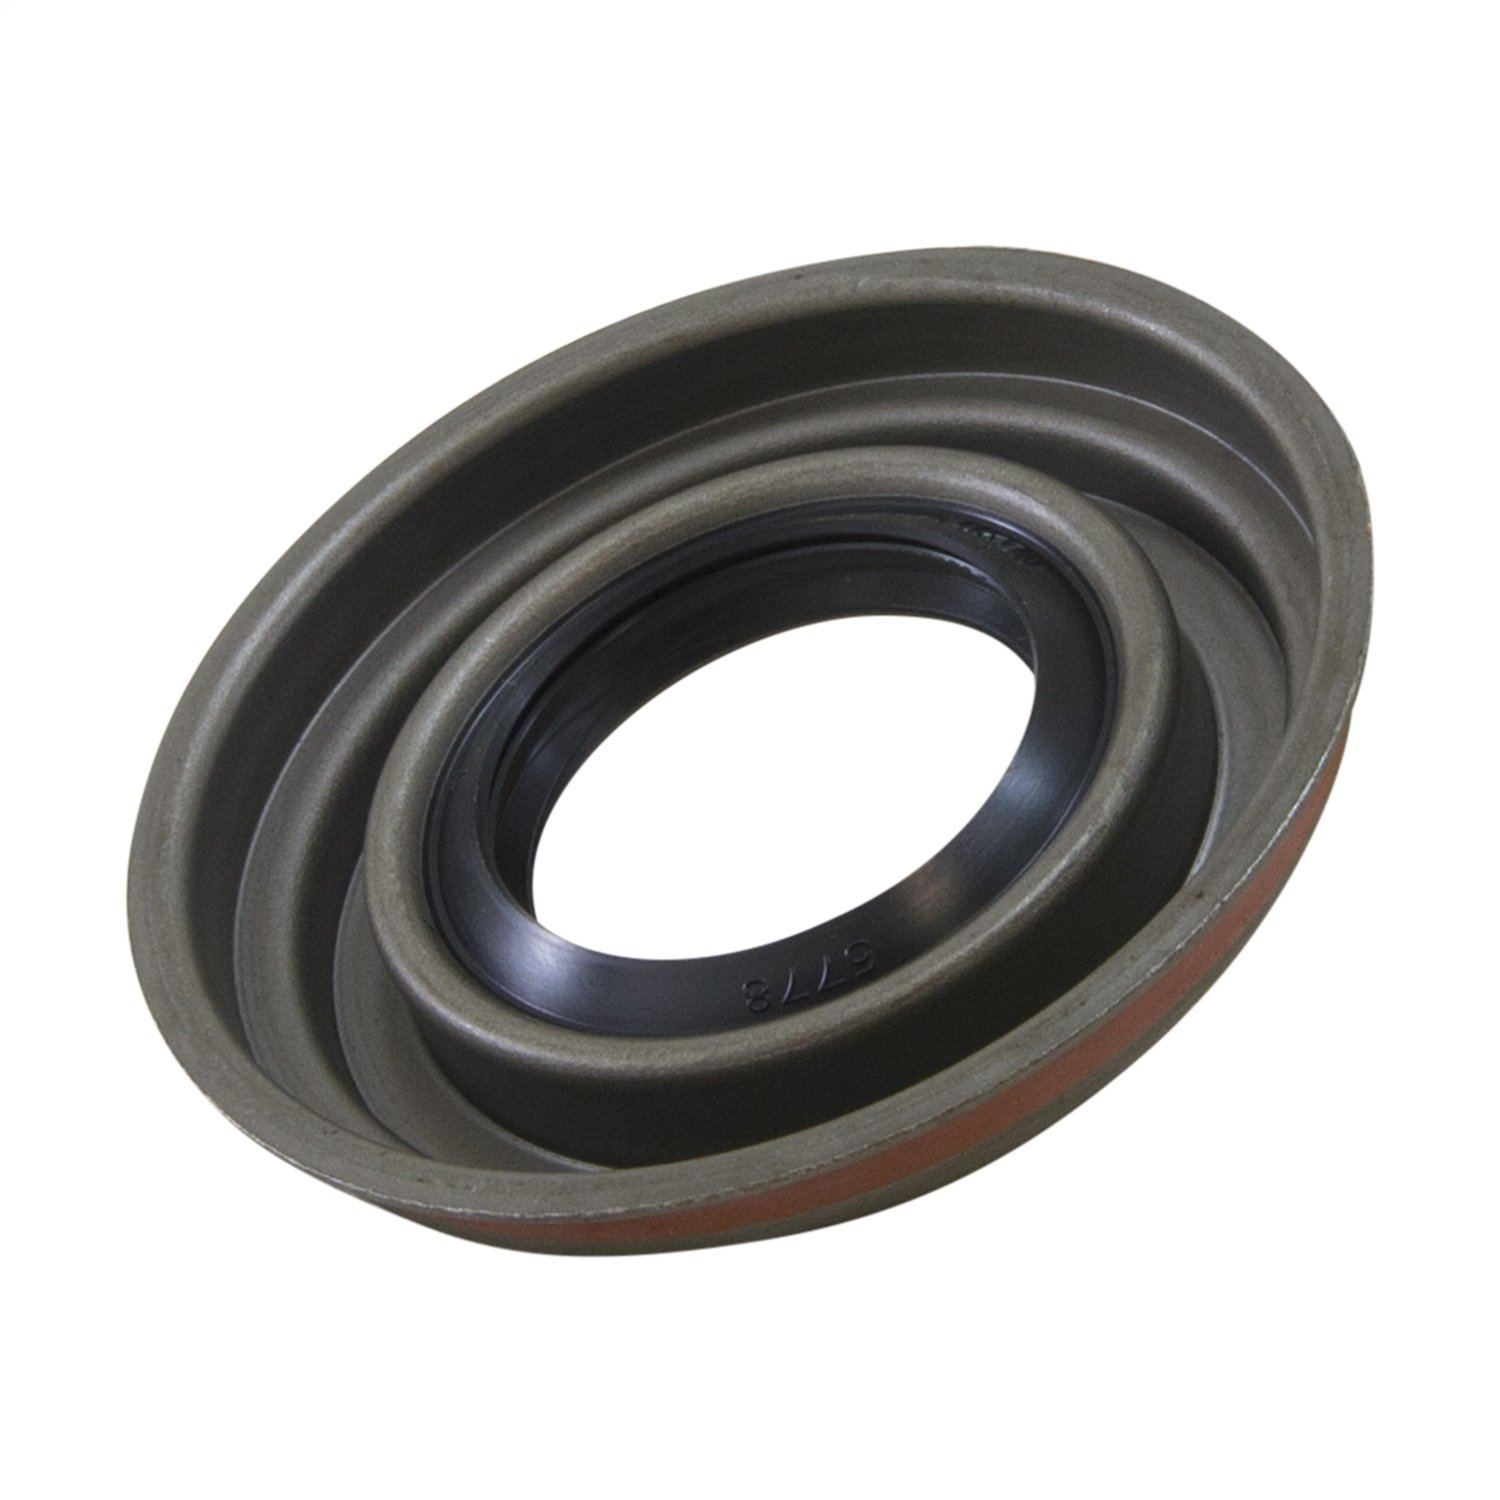 Yukon (YMS4434V) Replacement Pinion Seal for Jeep TJ Dana 30/44 Differential Yukon Gear